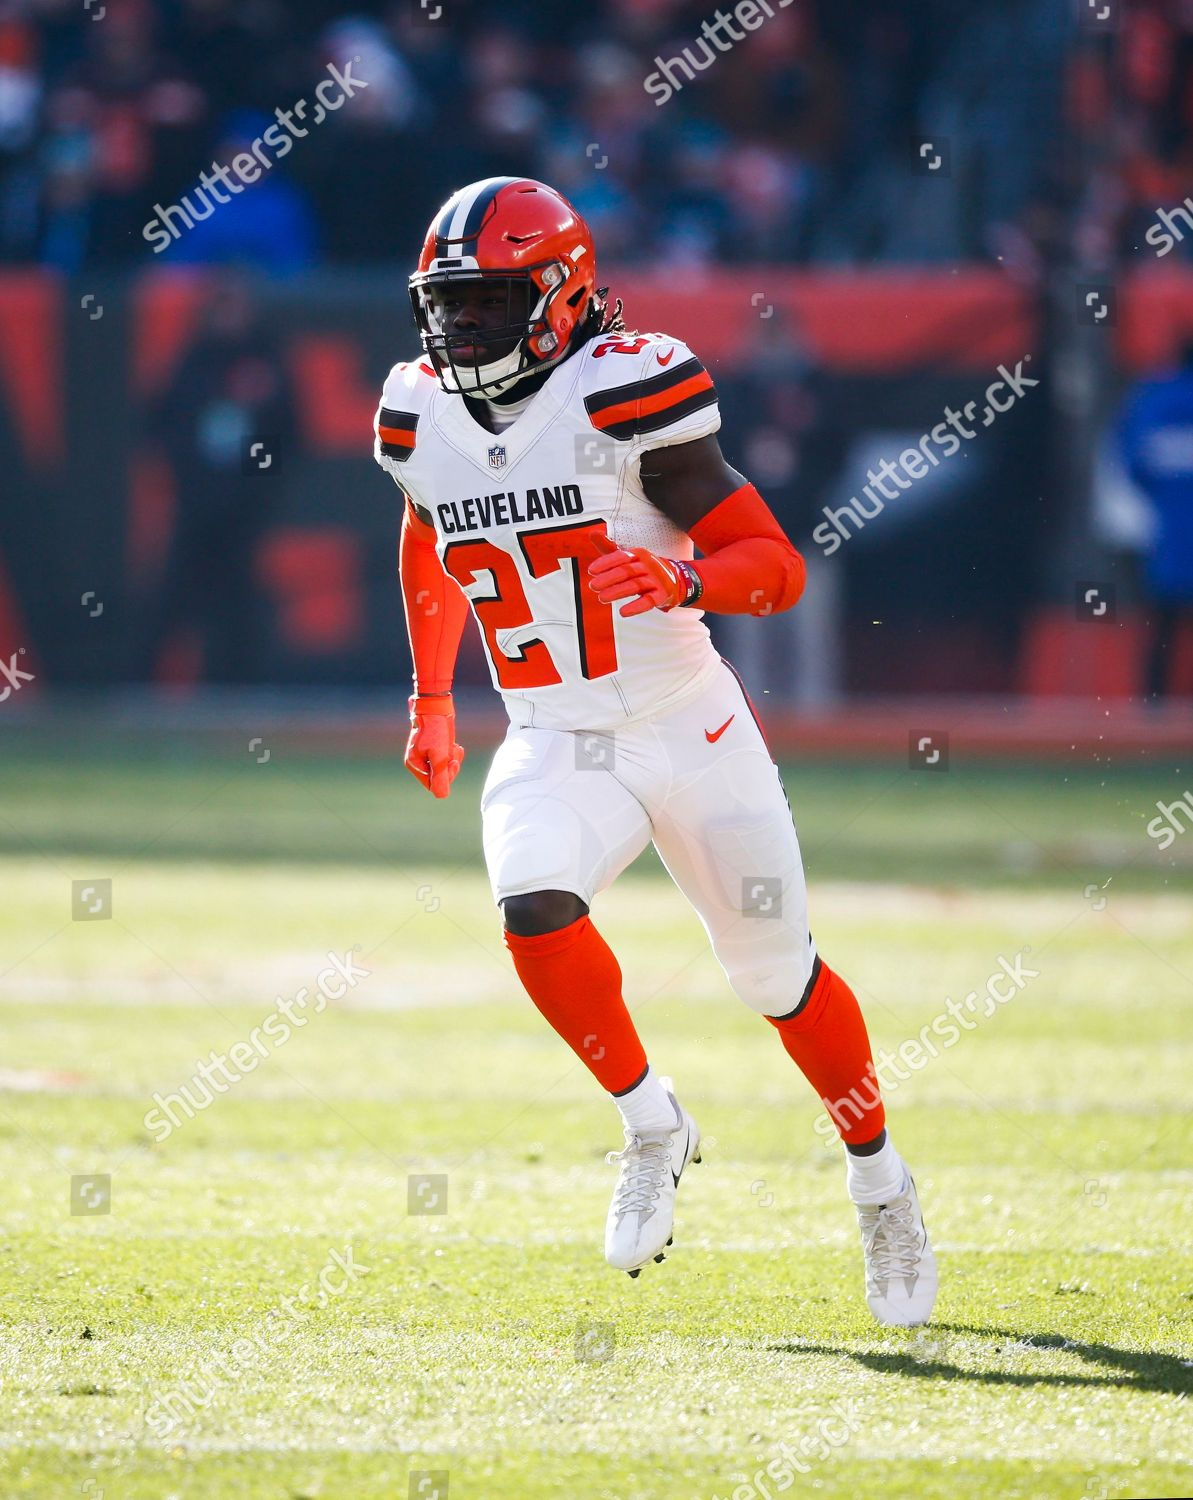 outlet store a462c 5da33 Cleveland Browns defensive back Tavierre Thomas plays ...